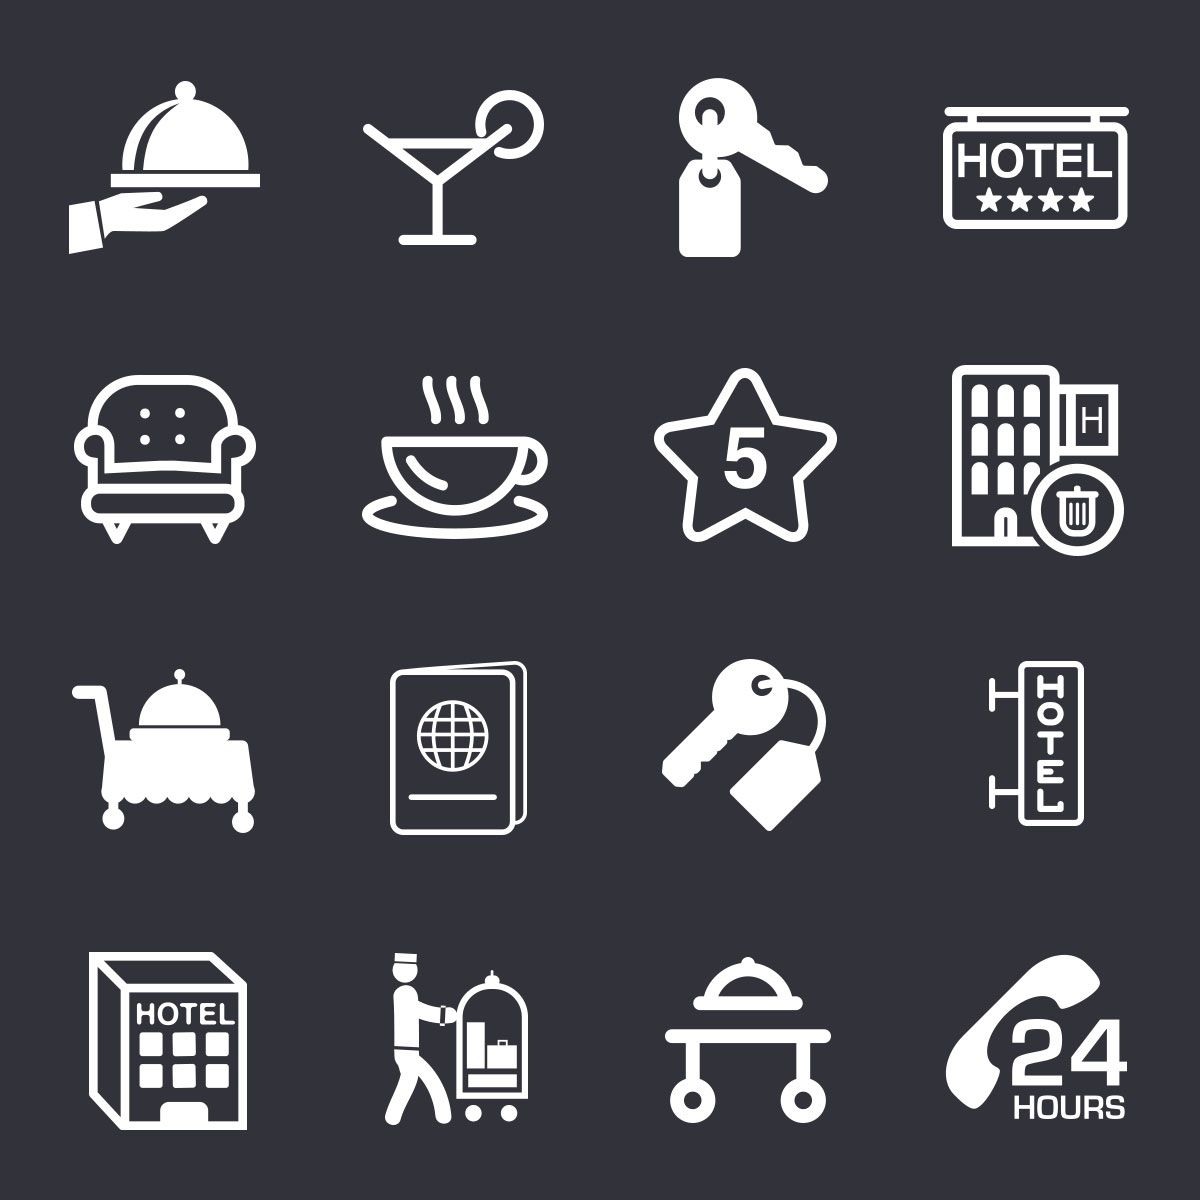 Free Hotel Icons Set Psd Pictogramme Hotel Photos